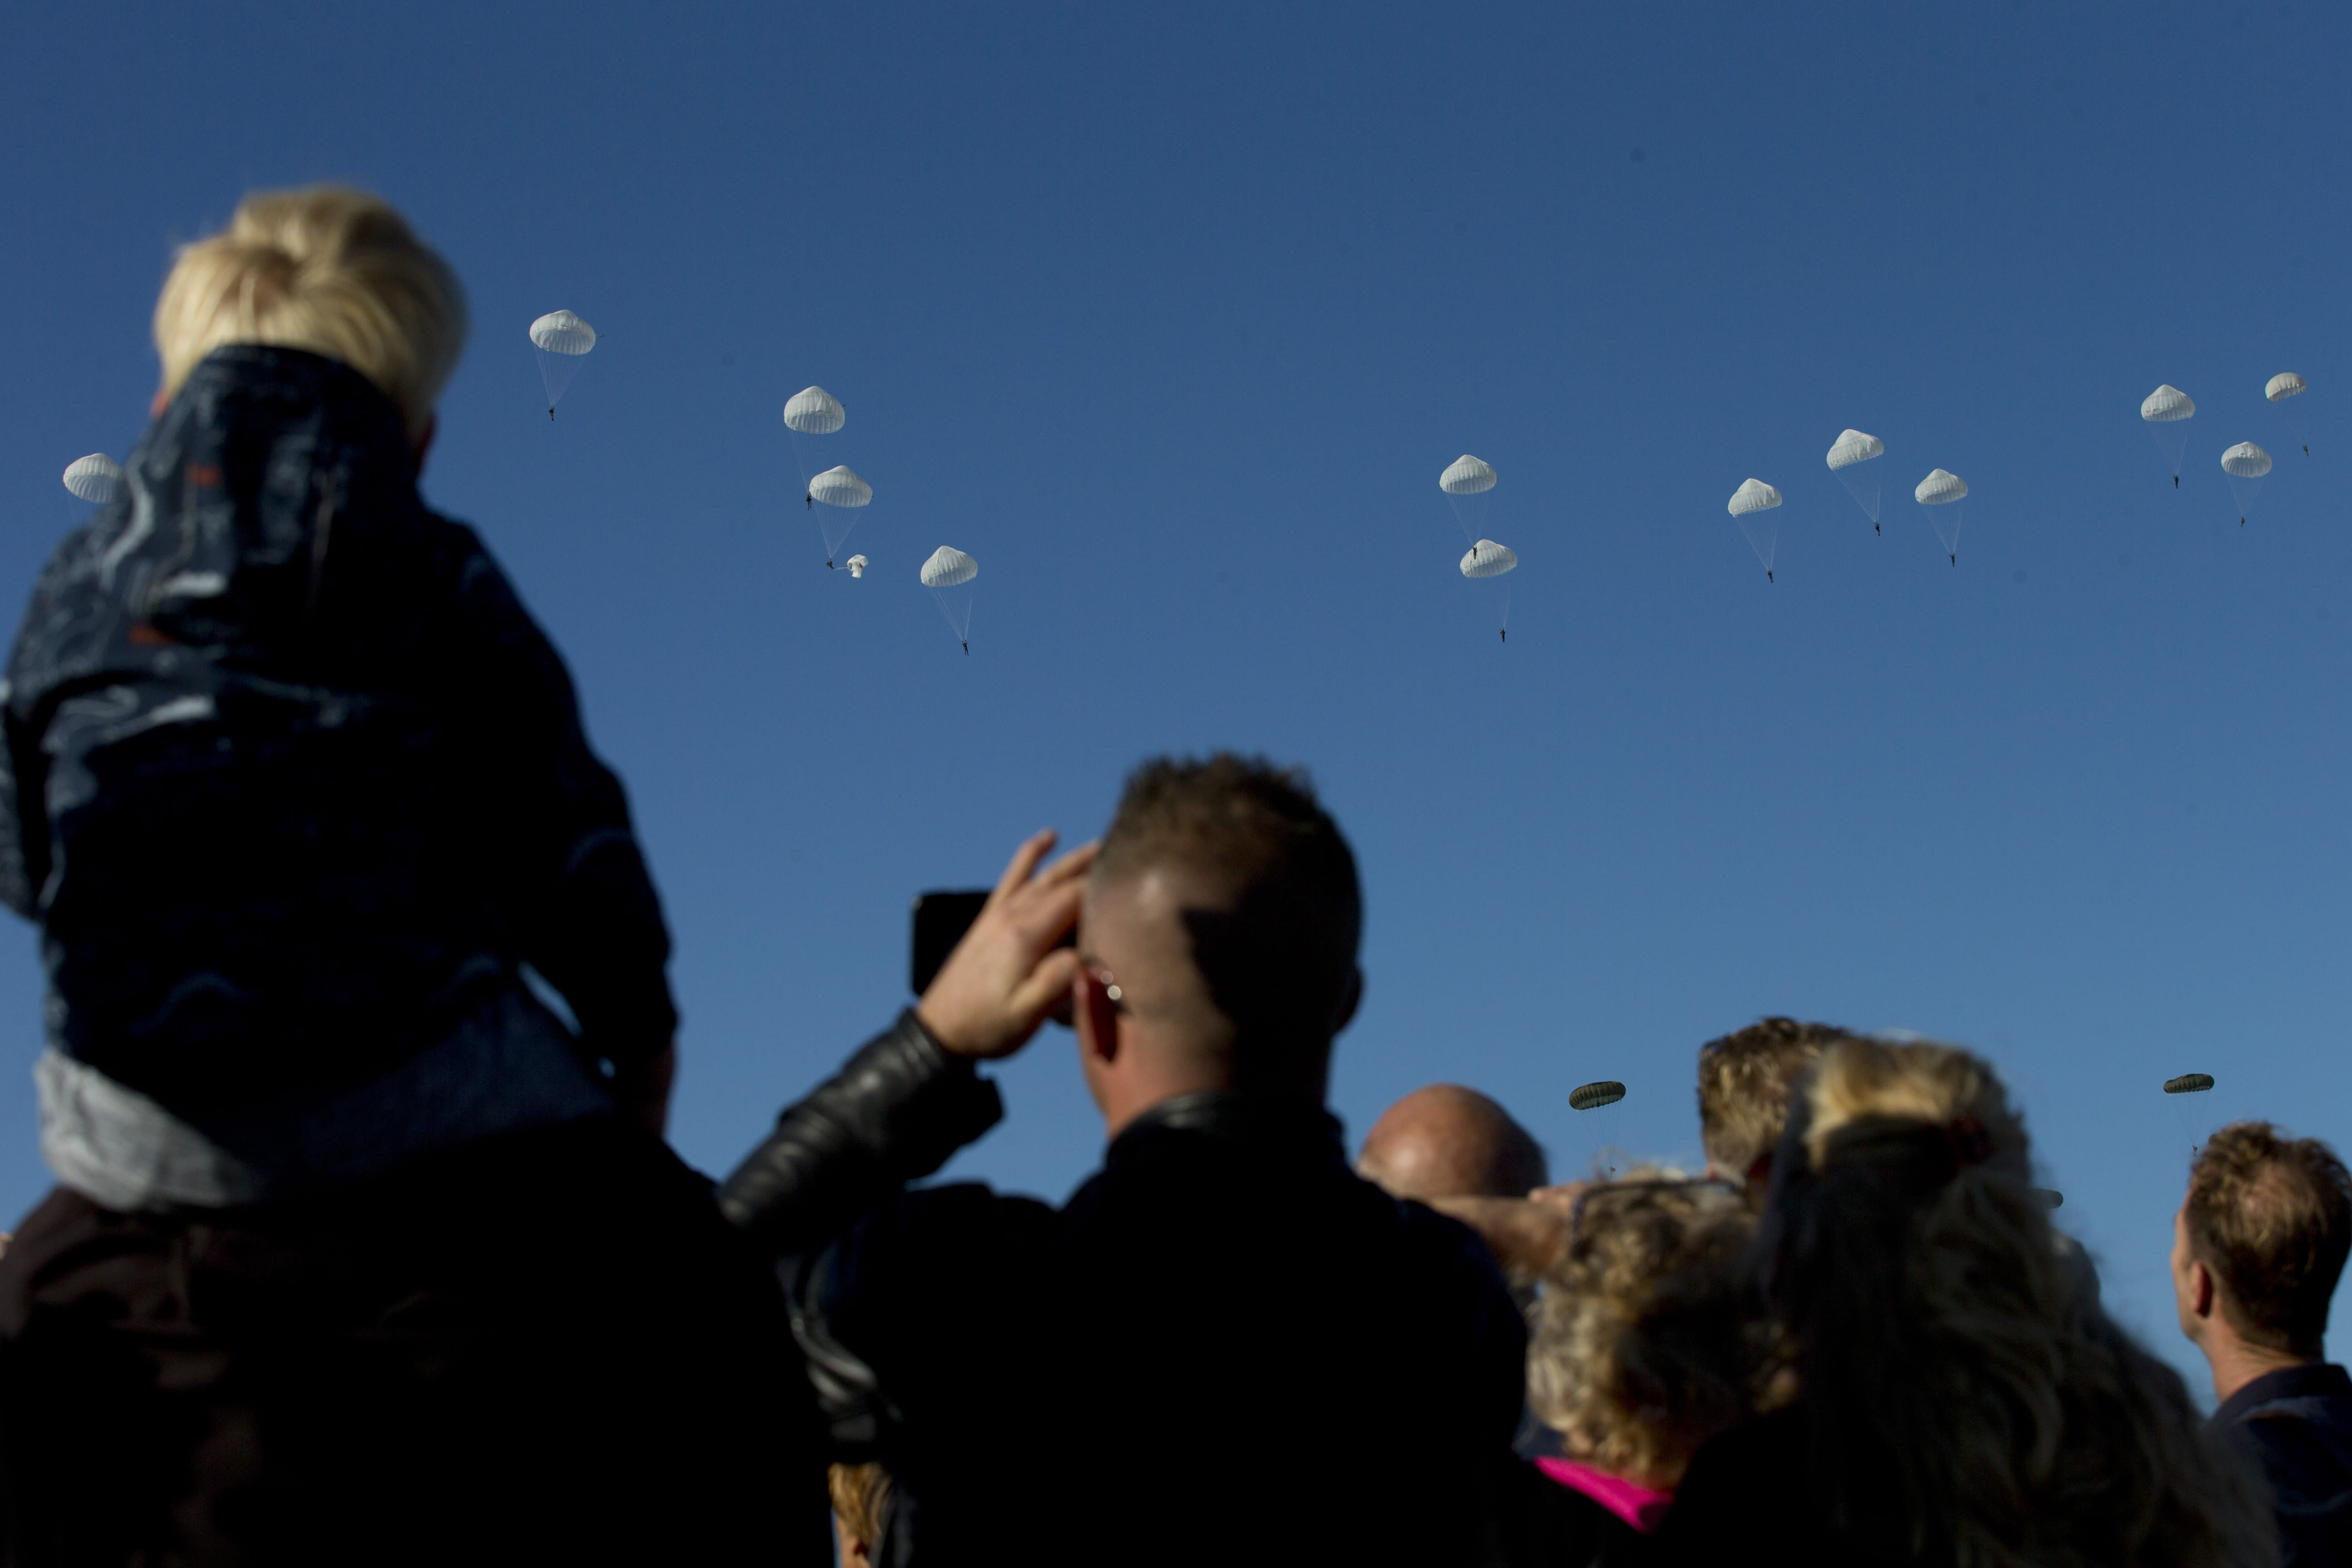 Spectators watch a mass parachute drop at Ginkel Heath, eastern Netherlands, Saturday, Sept. 21, 2019, as part of commemorations marking the 75th anniversary of Operation Market Garden, an ultimately unsuccessful airborne and land offensive that Allied leaders hoped would bring a swift end to World War II by capturing key Dutch bridges and opening a path to Berlin. (AP Photo/Peter Dejong)